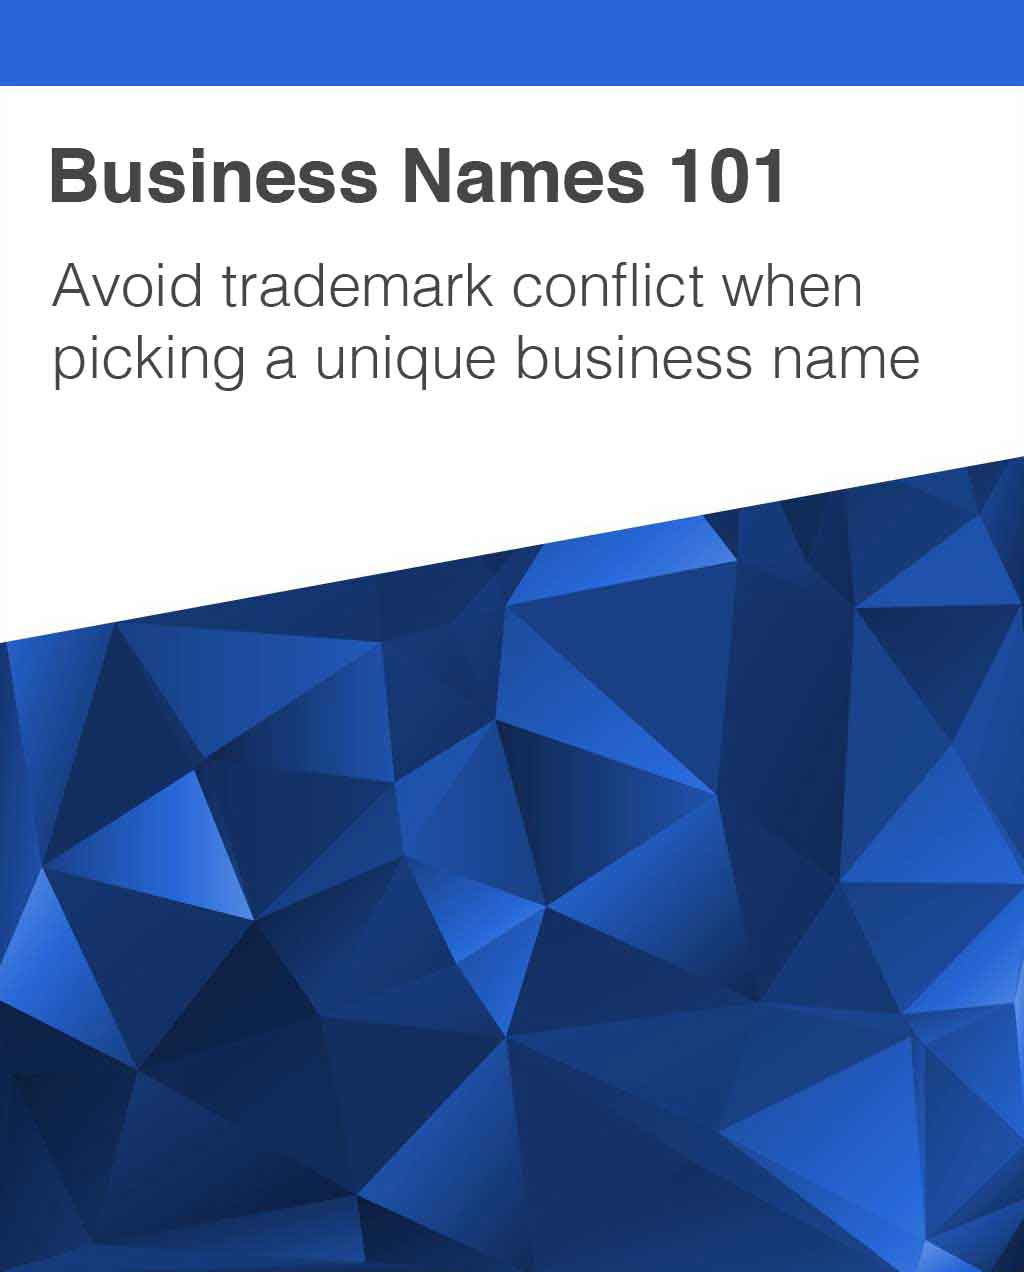 Trademark Conflicts and Business Naming